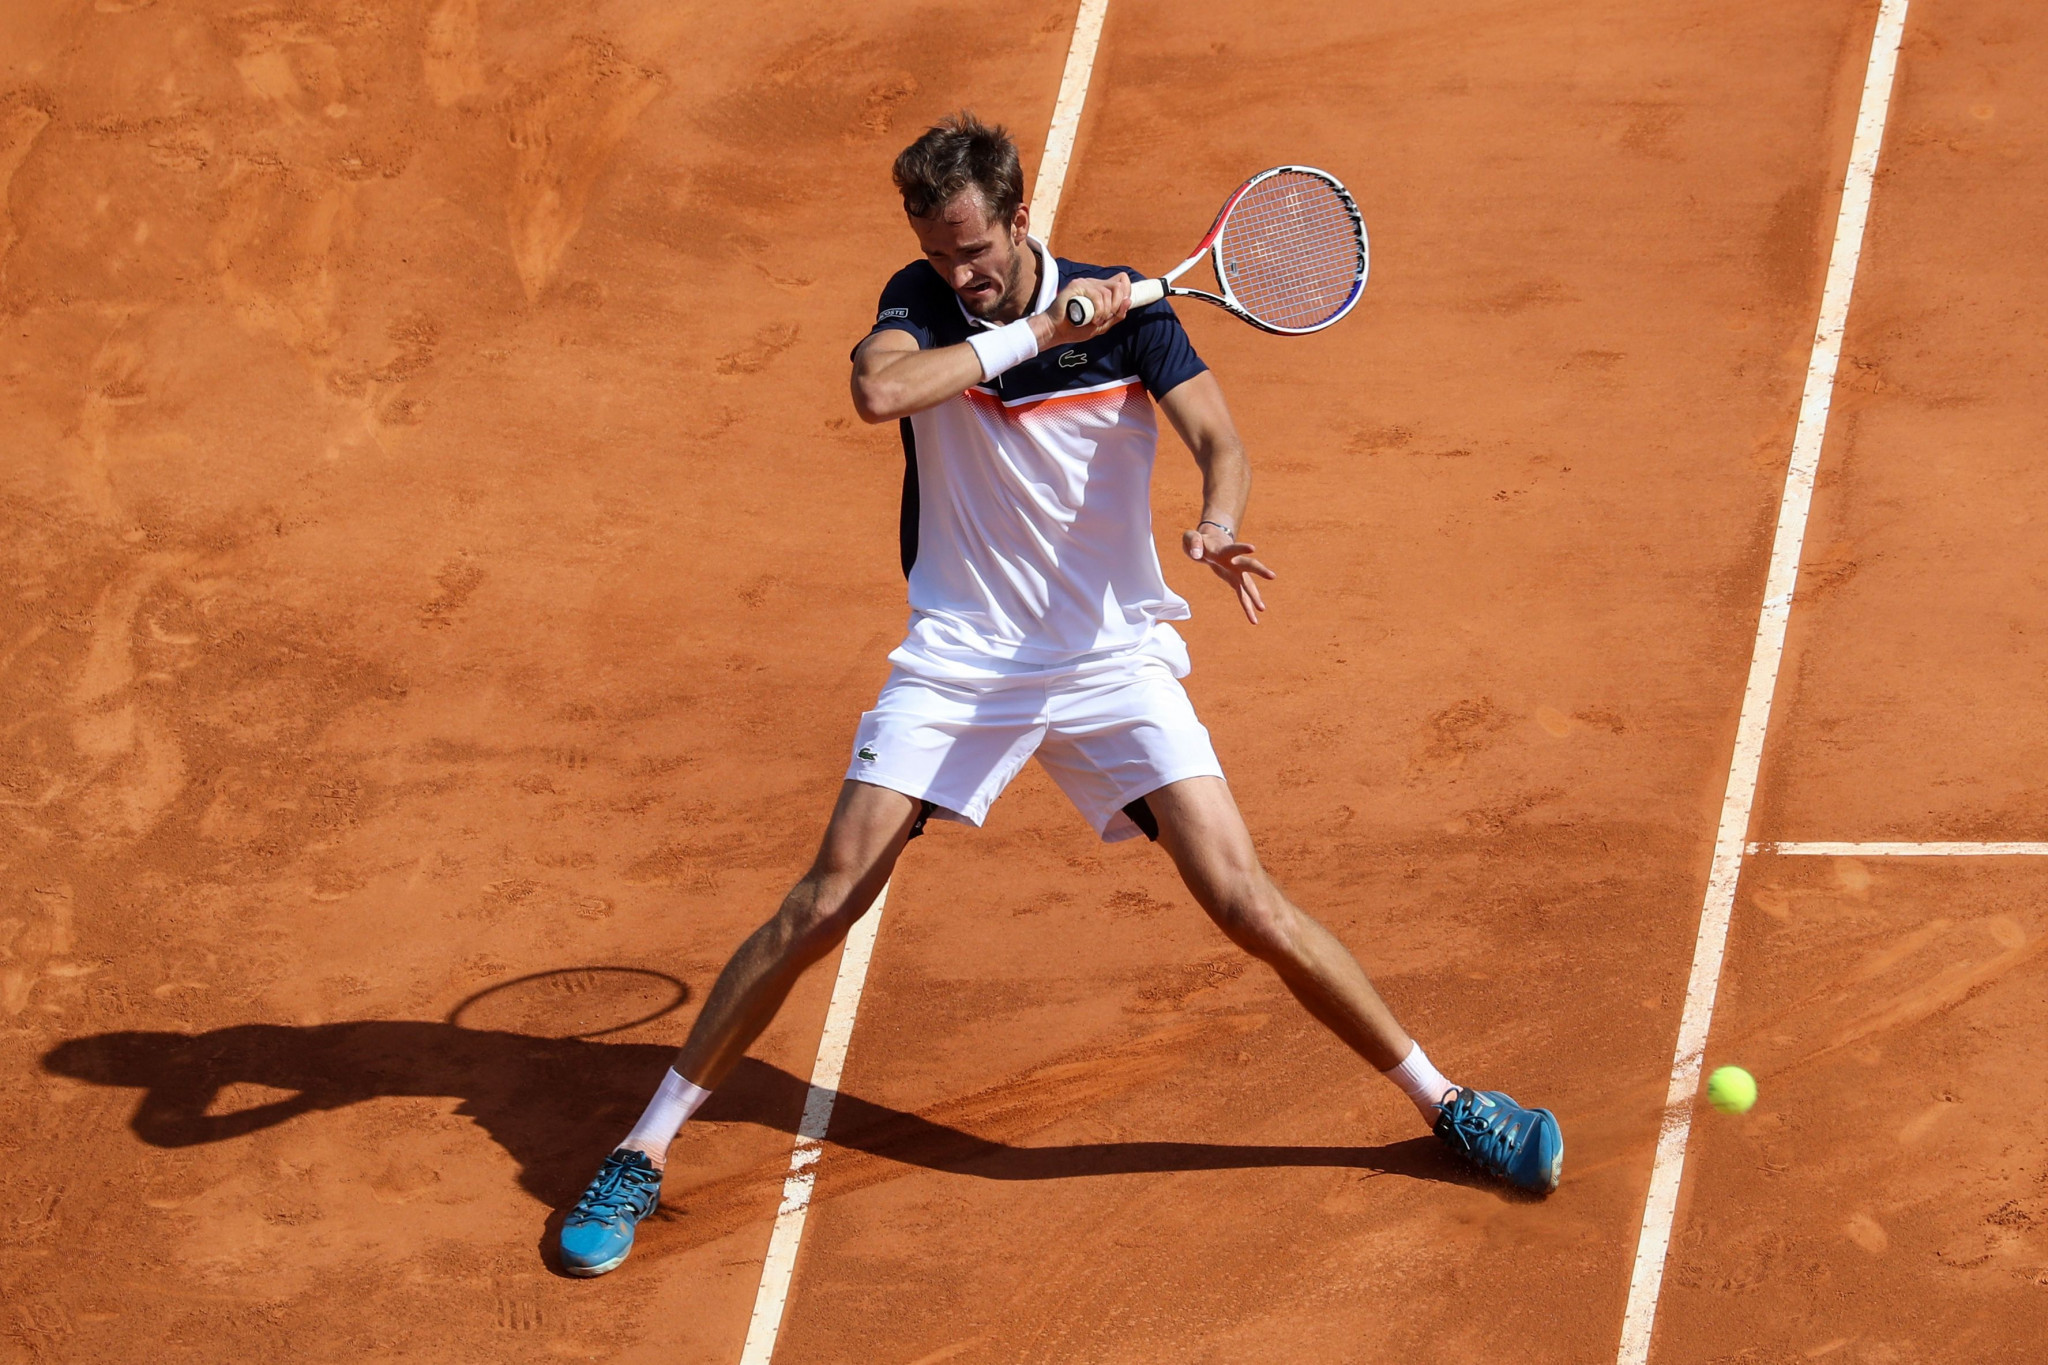 Russia's Daniil Medvedev reached his first ATP Masters 1000 semi-final in Monte-Carlo ©Getty Images